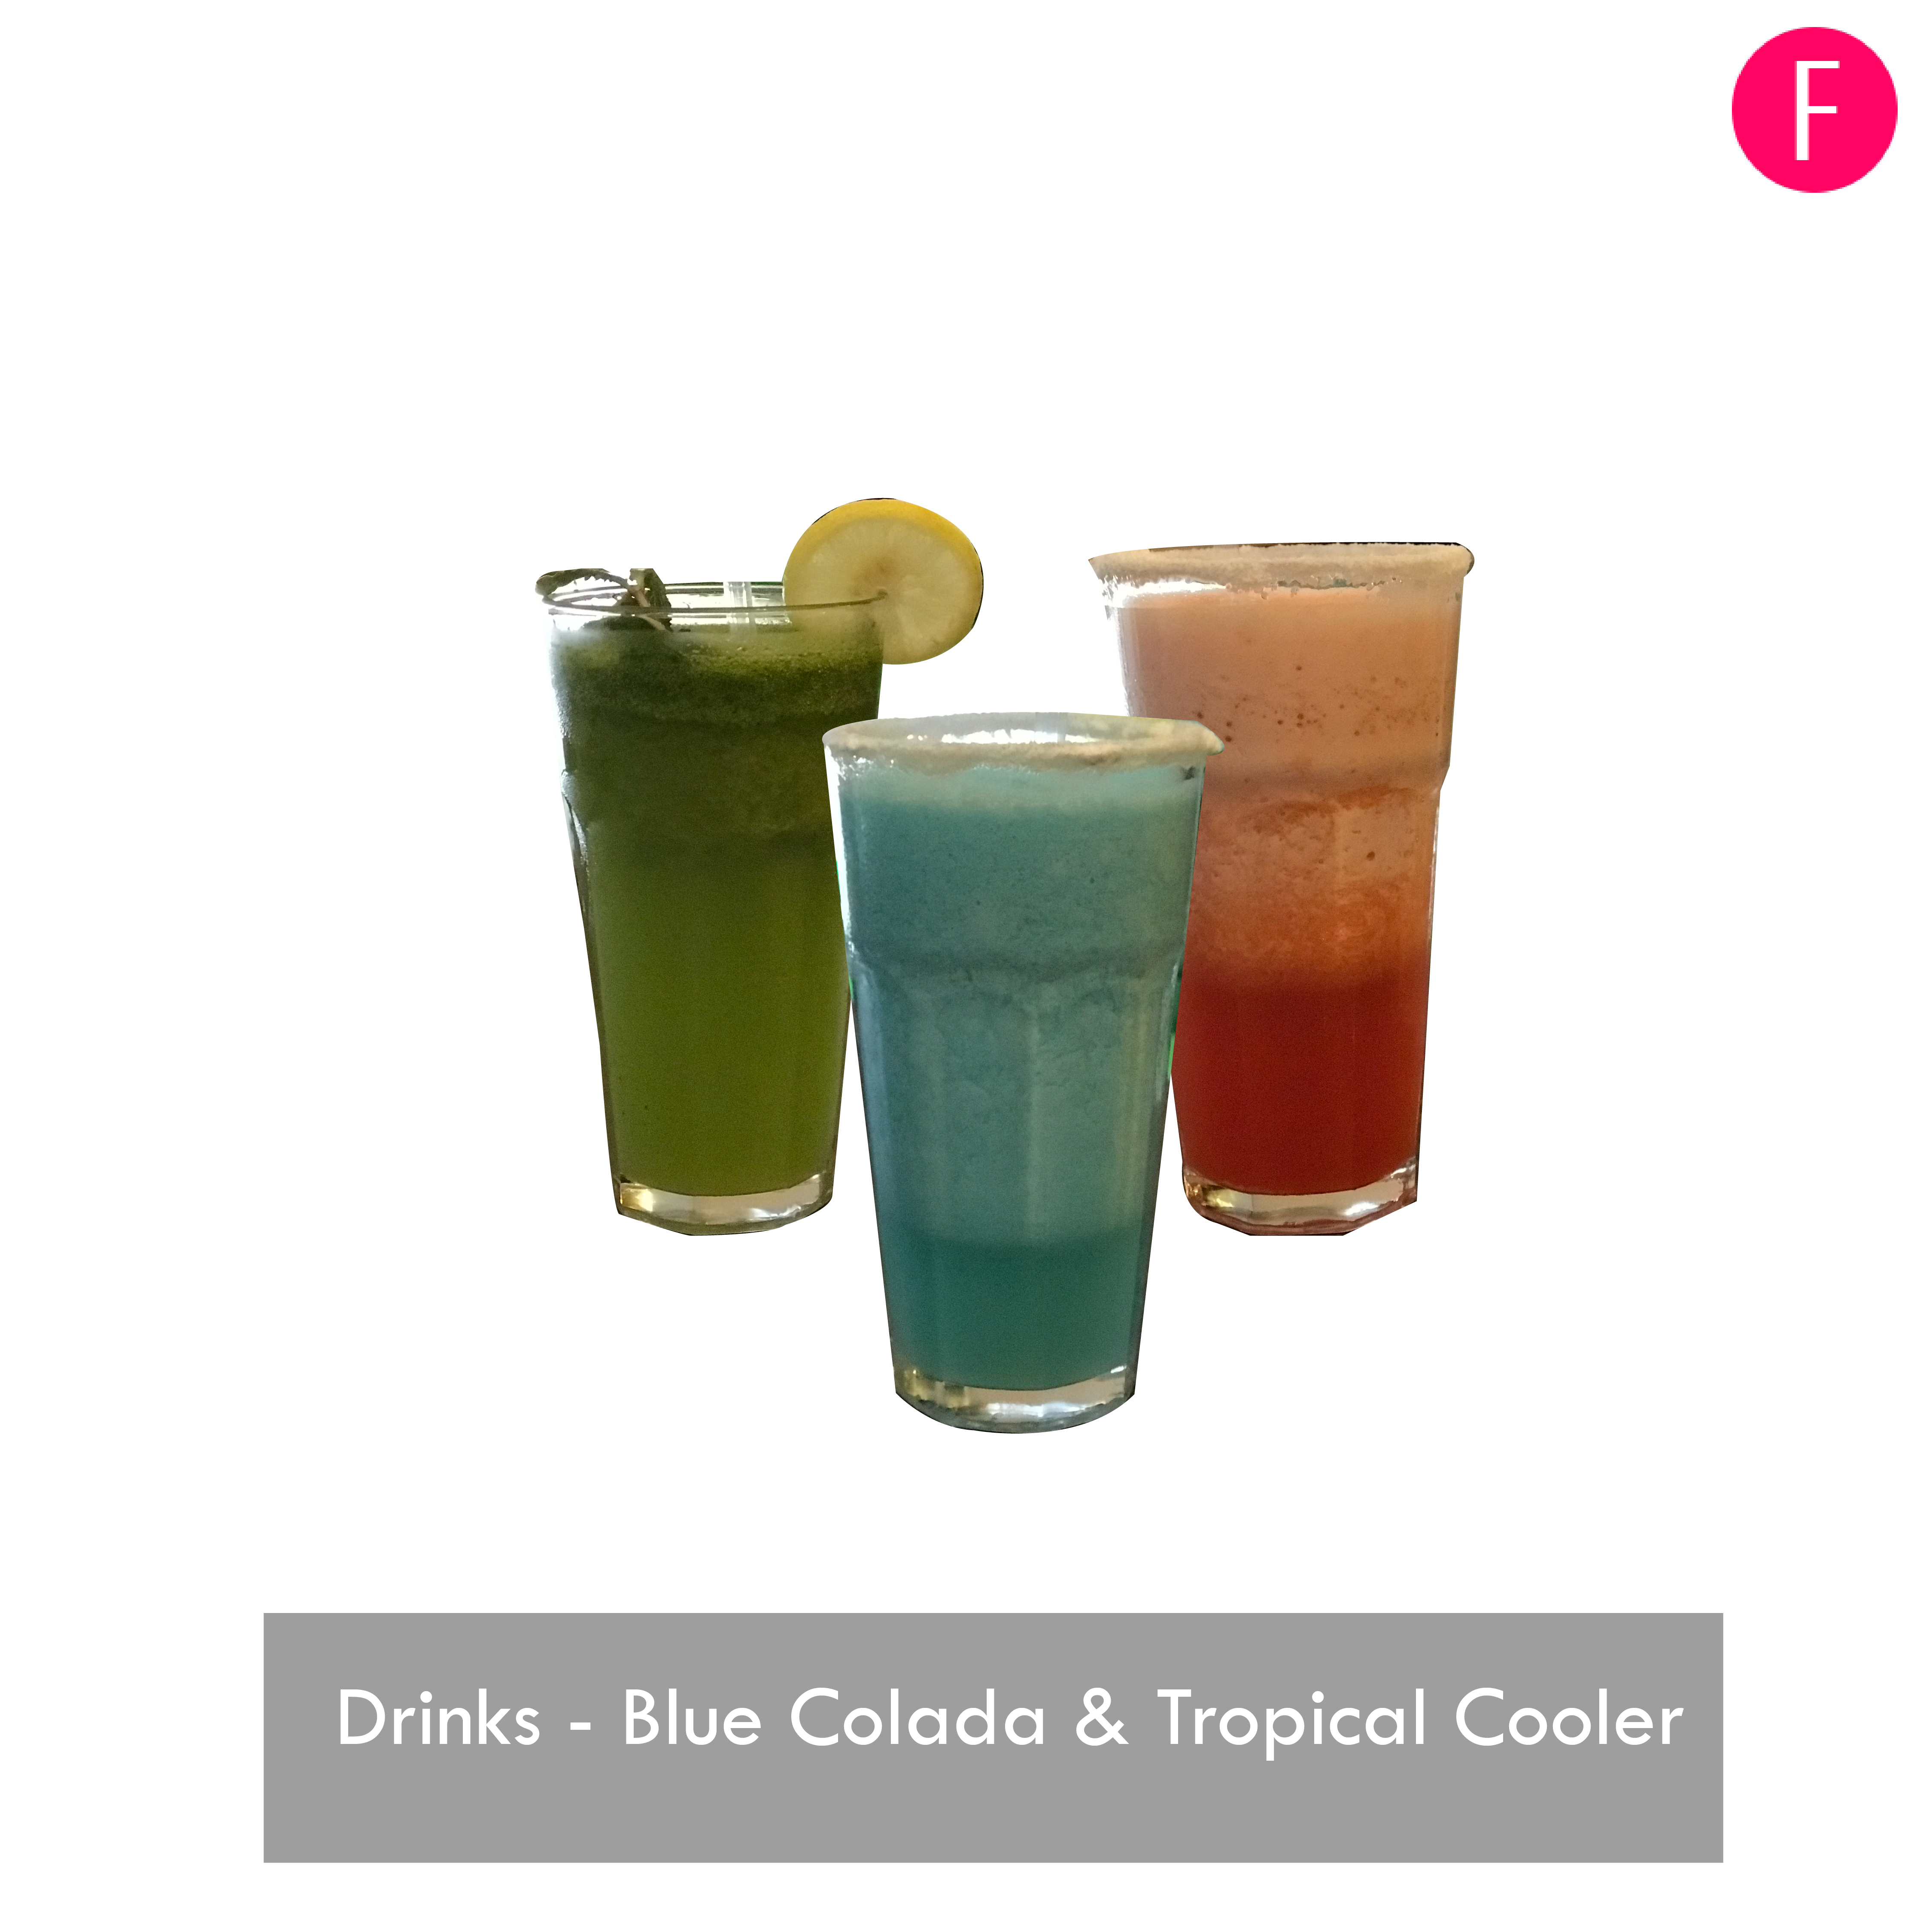 Blue Colada, Tropical Cooler, Vintage Cafe, Cafes in Karachi, Summer Drinks